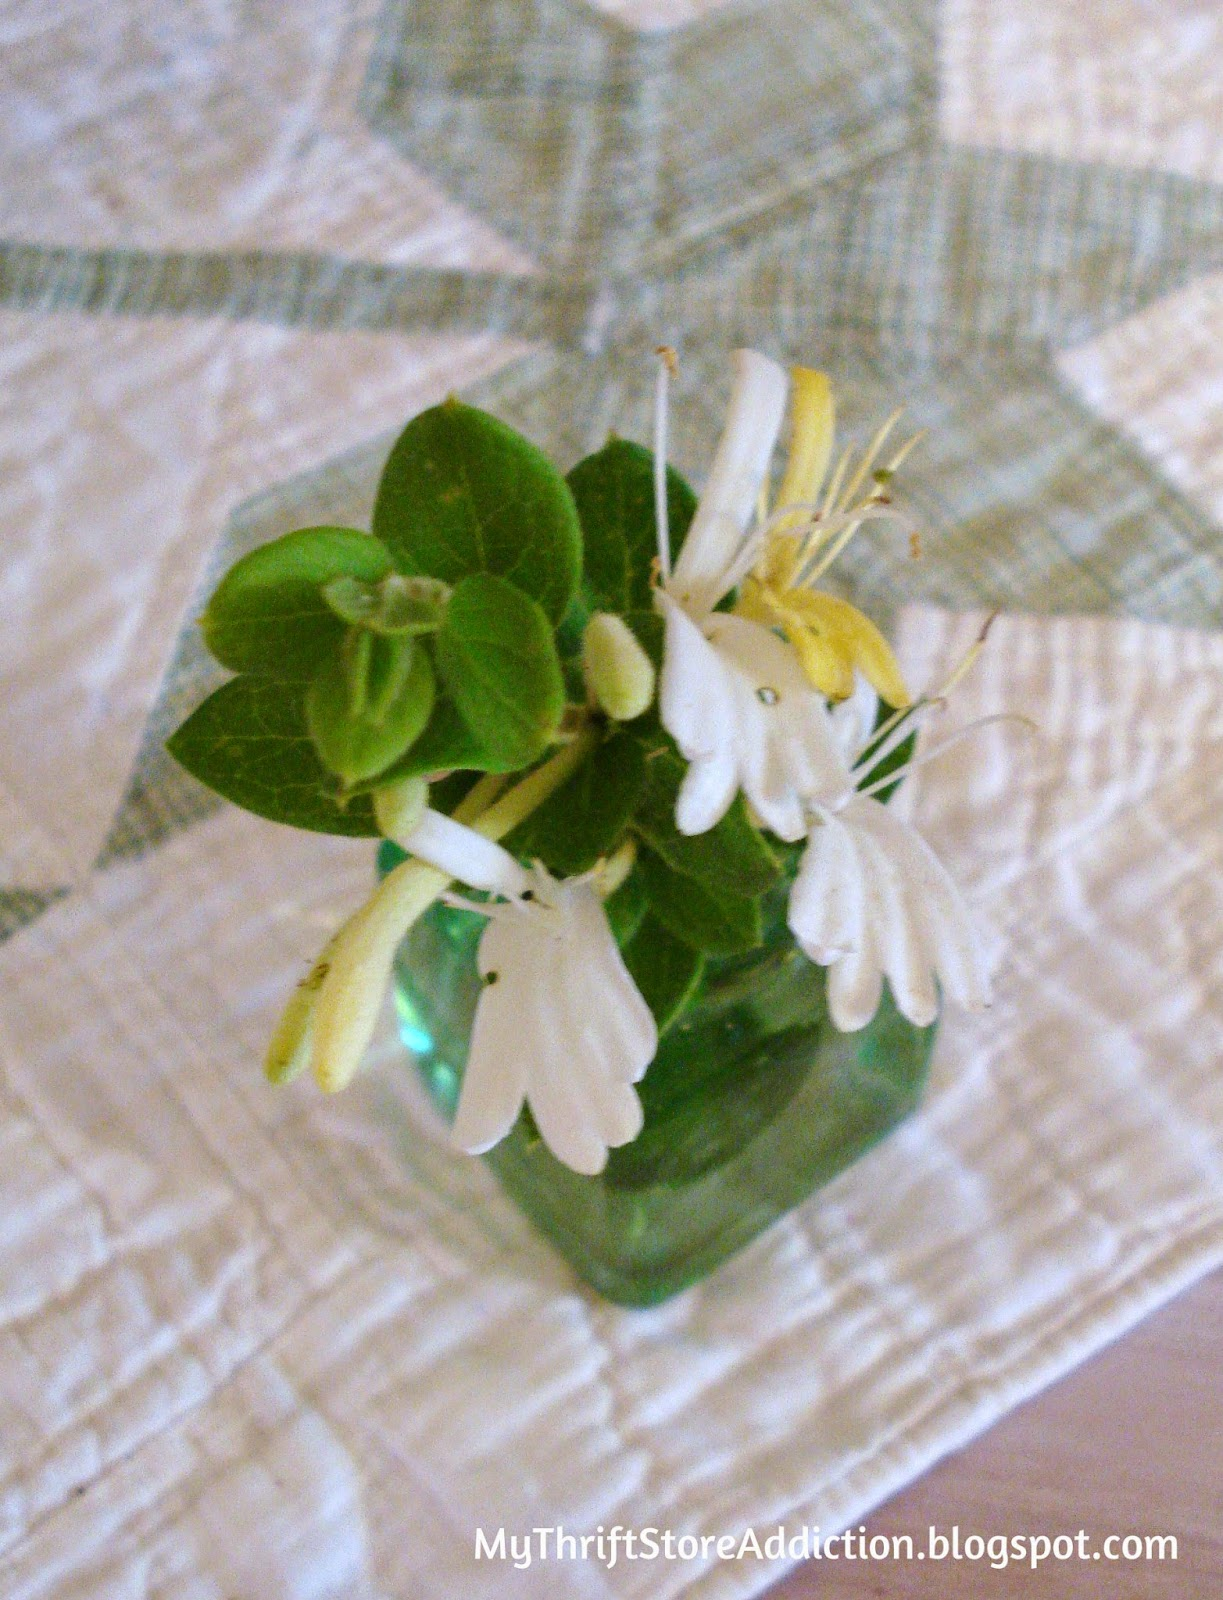 Fragrant honeysuckle